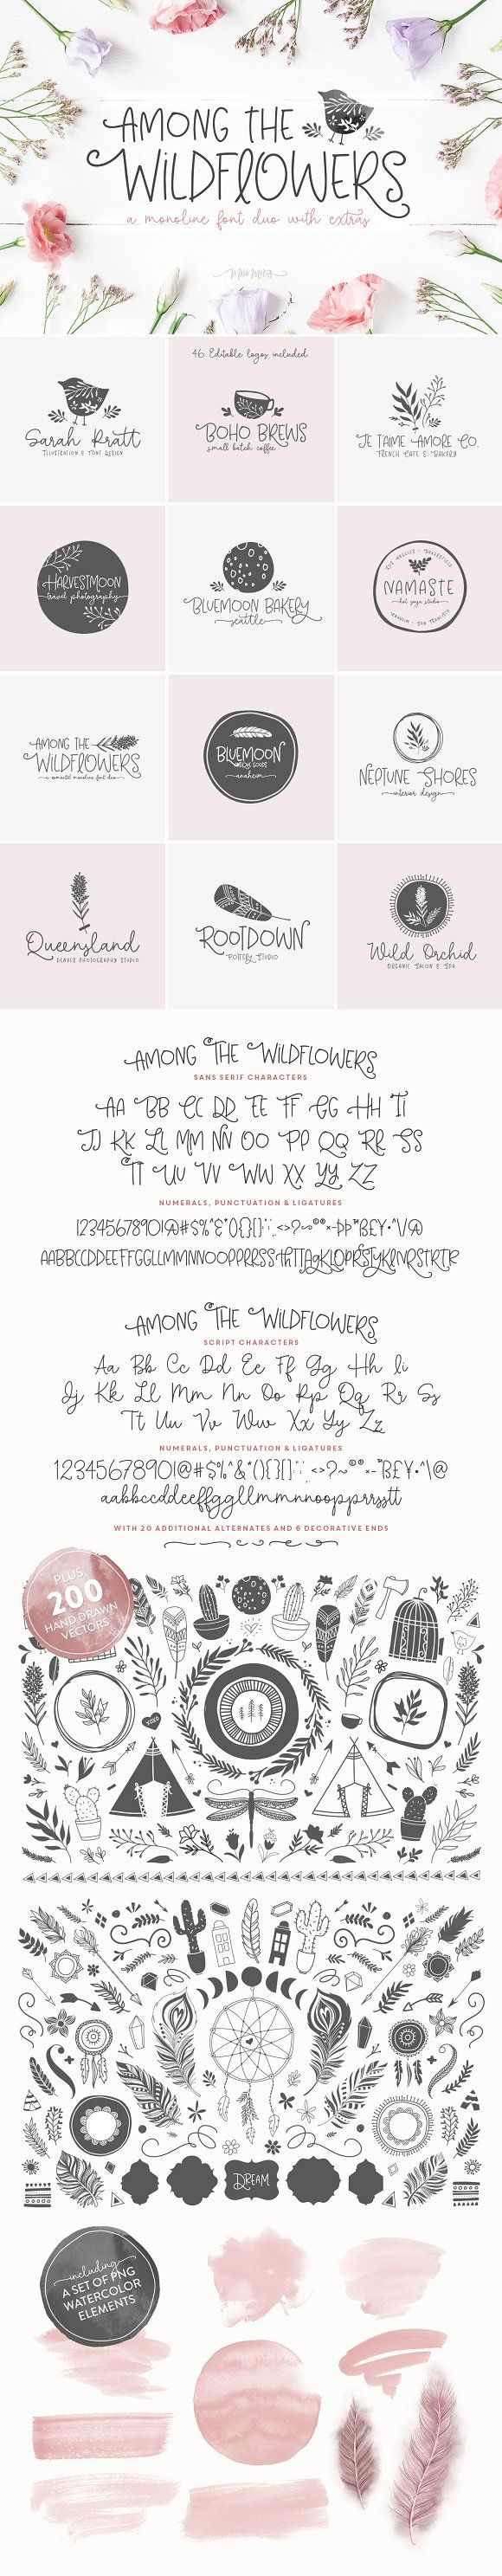 Among The Wildflowers | Font Duo by Callie Hegstrom on @creativemarket